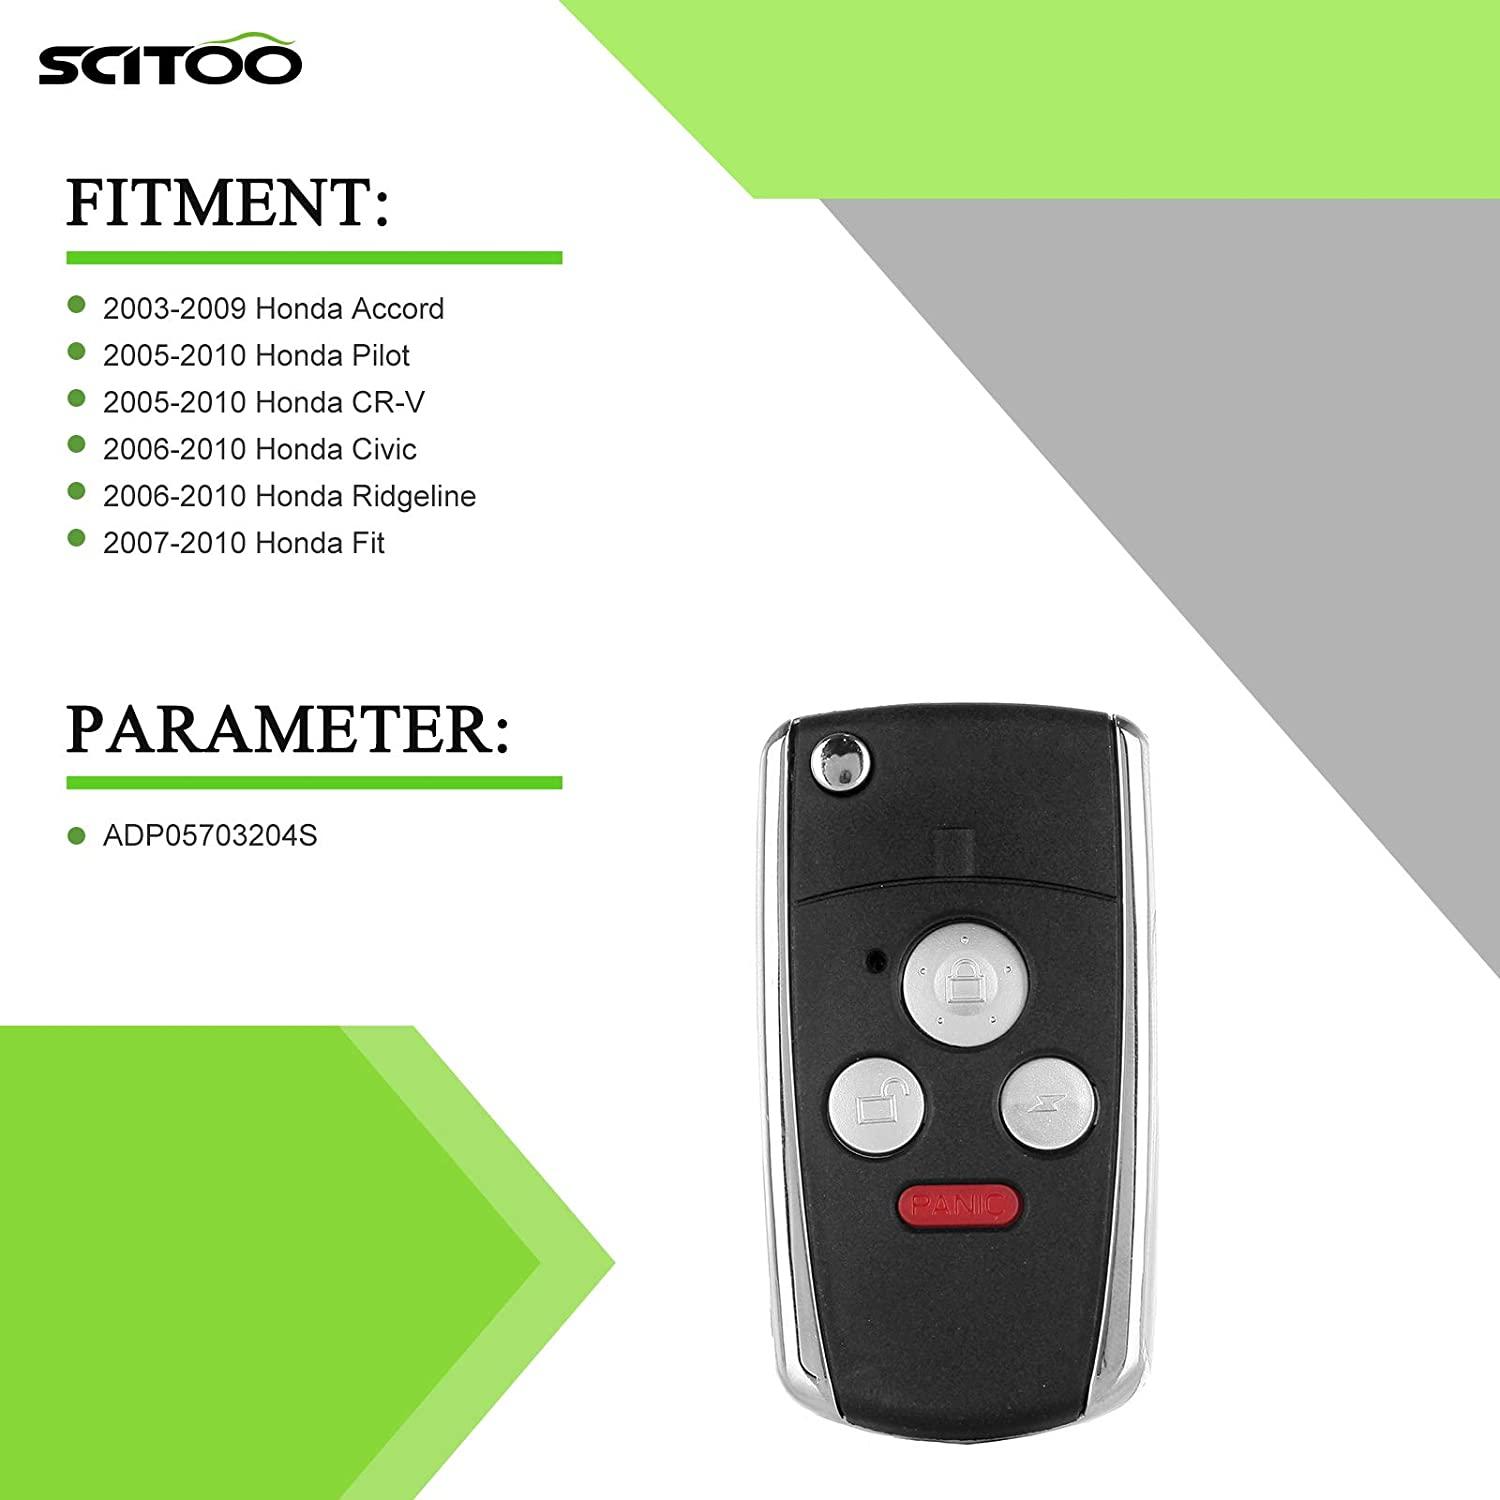 SCITOO Compatible with Keyless Remote Case 1 PC Replacement Remote Flip Folding 3+1 4Button Keyless Entry Fob Key Shell Case fit HONDA Accord 2003 2004 2005 2006 2007 2008 2009